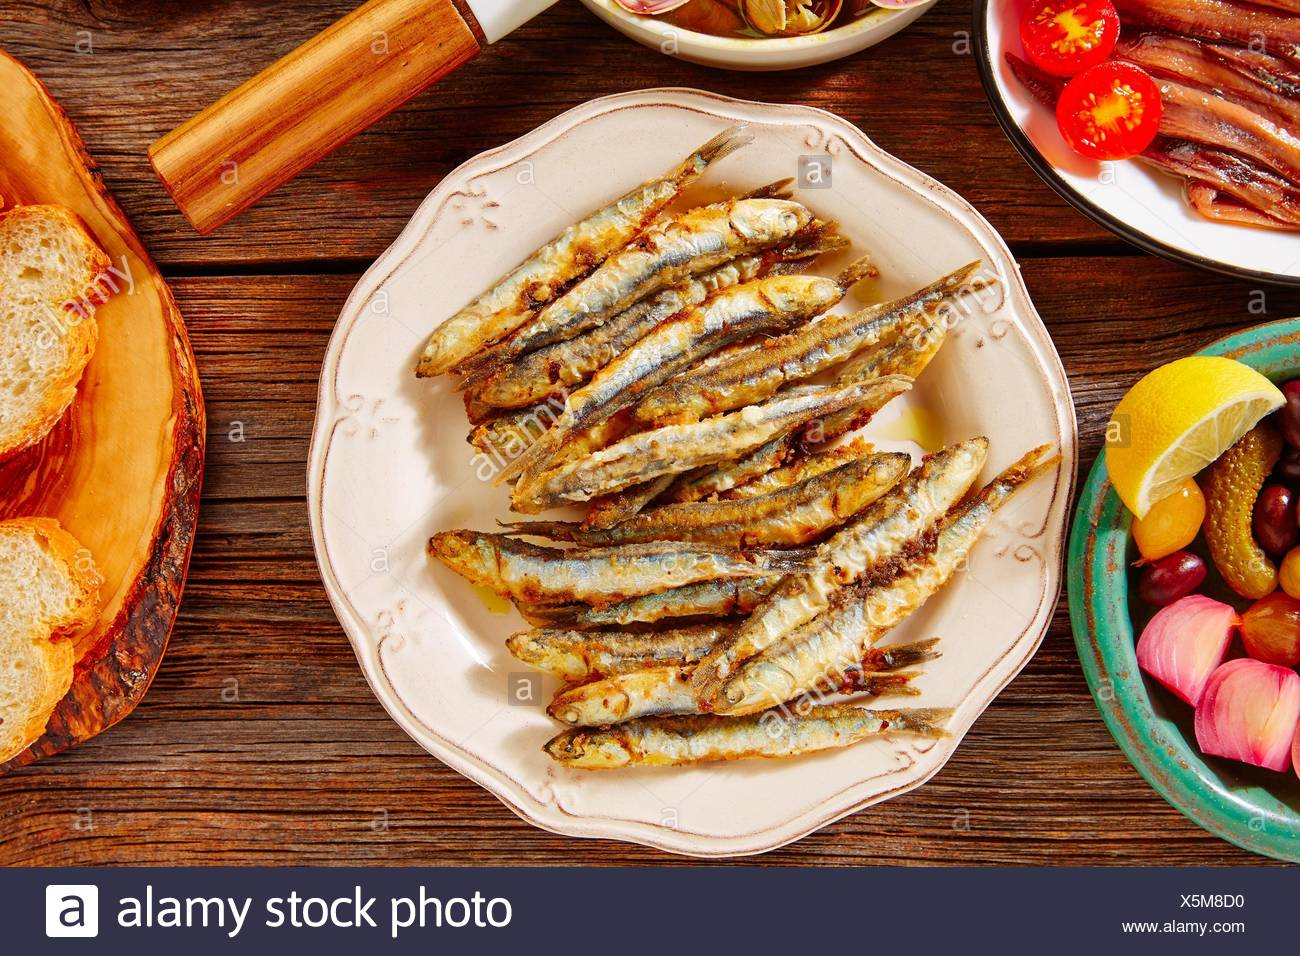 Tapas seafood fried anchovies fish from Spain. - Stock Image